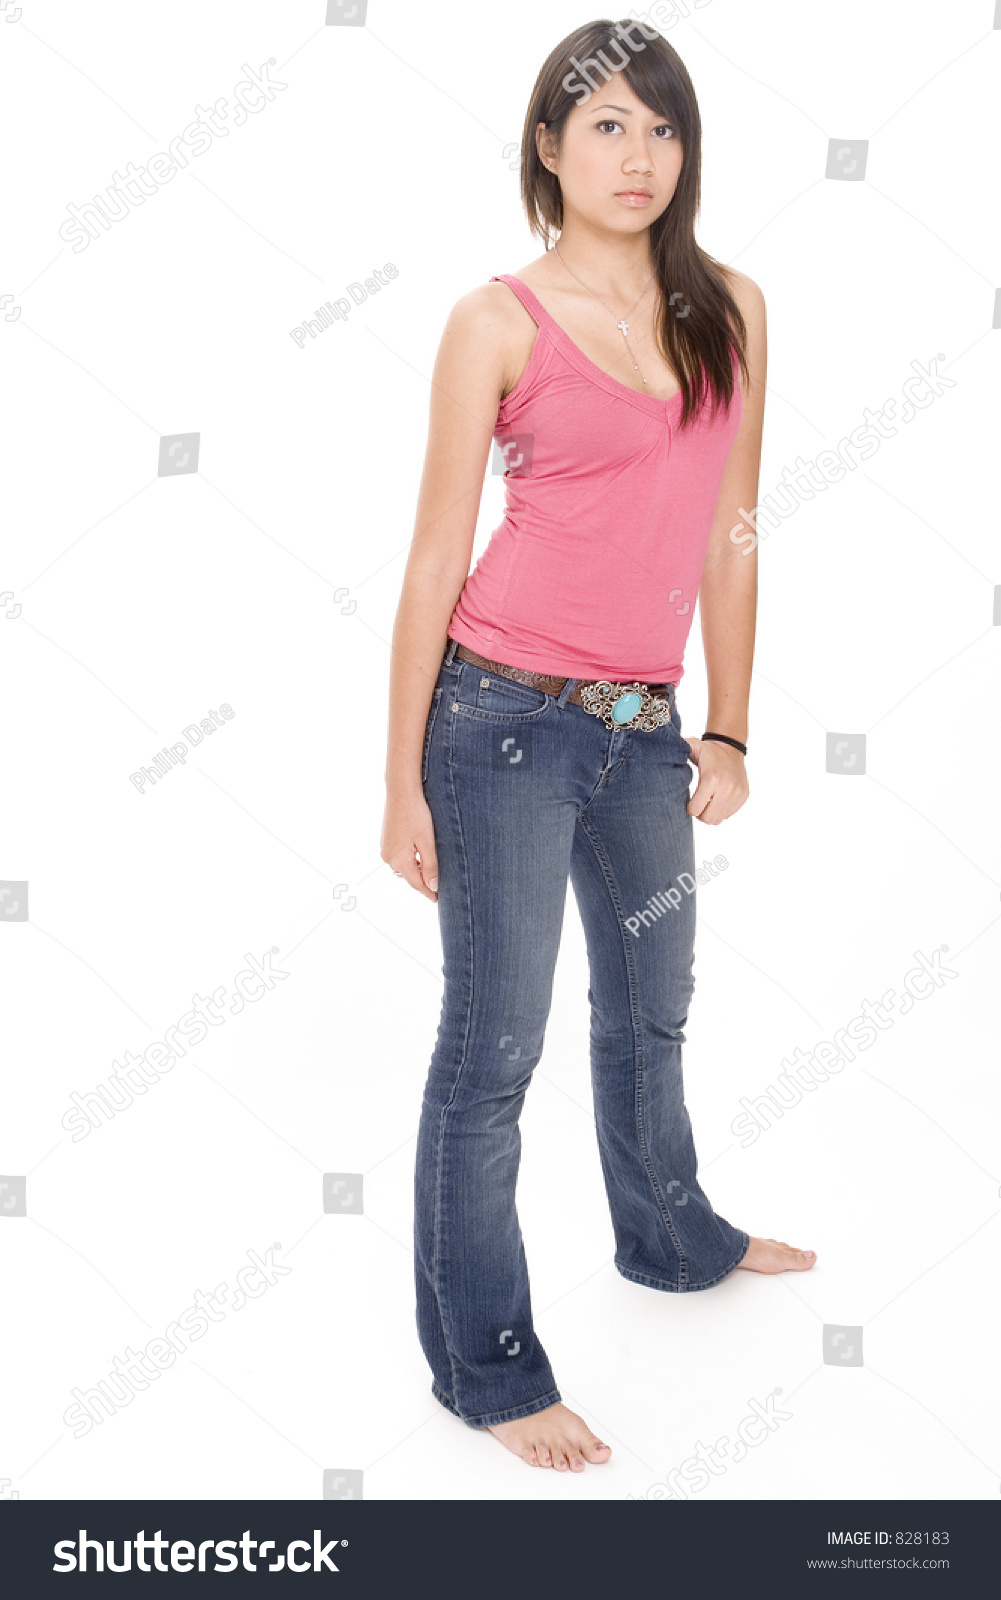 Cute Serious Young Woman Casual Clothes Stock Photo 828183 ...